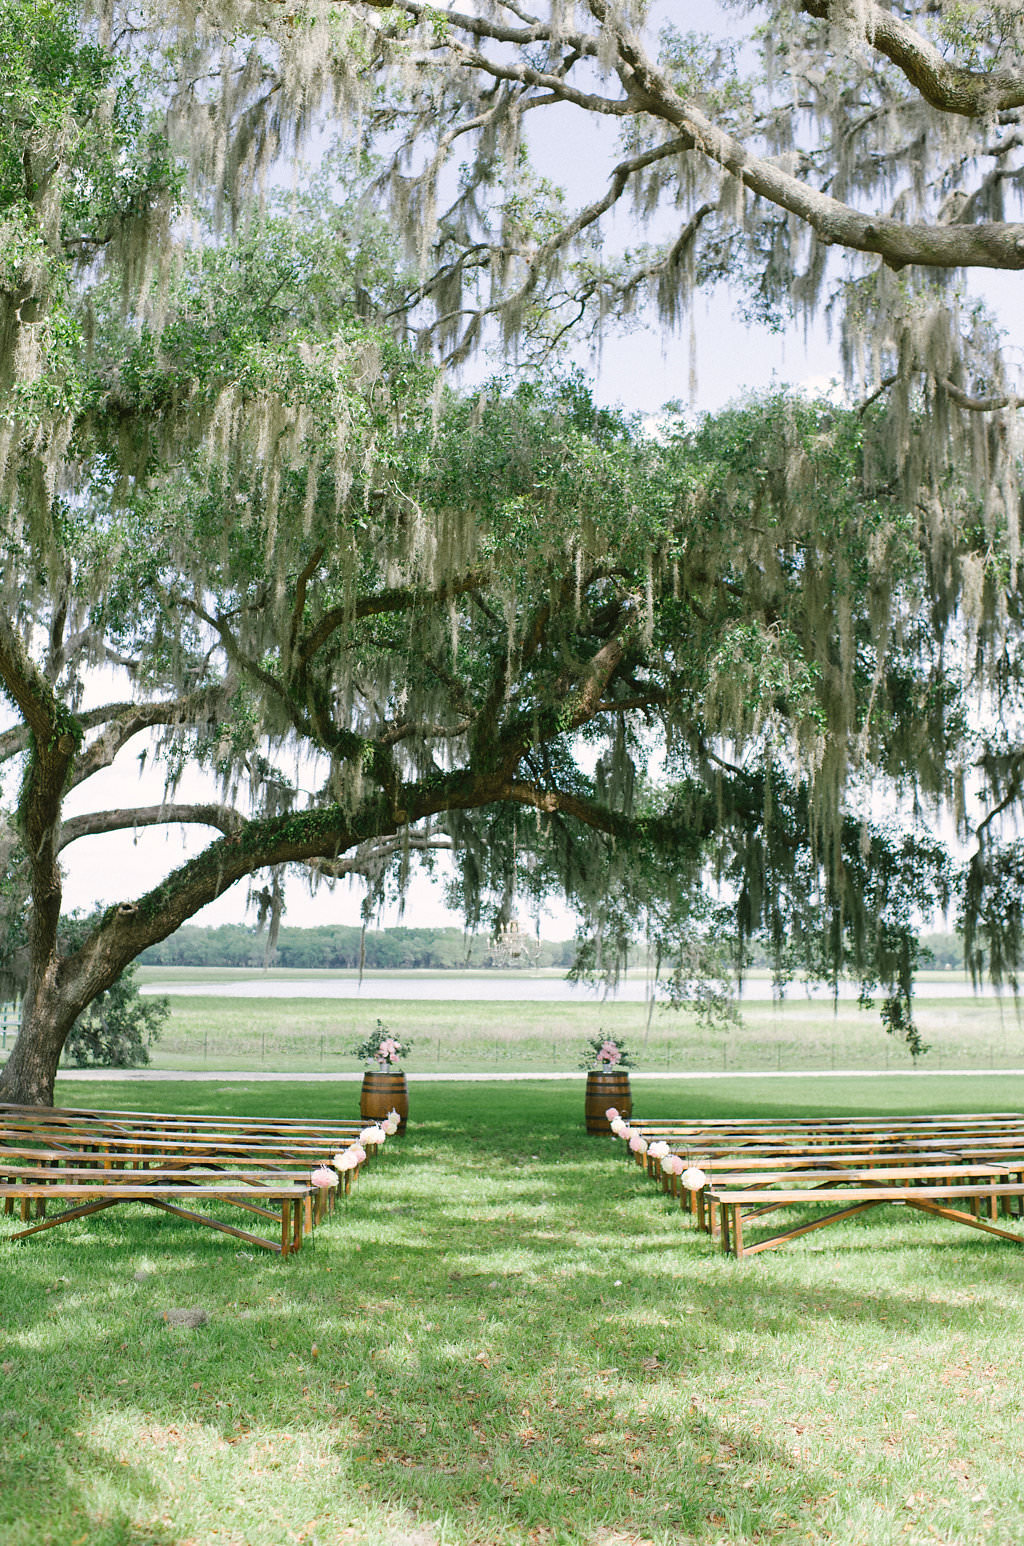 Rustic Florida Outdoor Wedding Ceremony Decor, Wooden Benches, Wooden Barrels with Floral Arrangements | Inverness Rustic Wedding Venue Lakeside Ranch